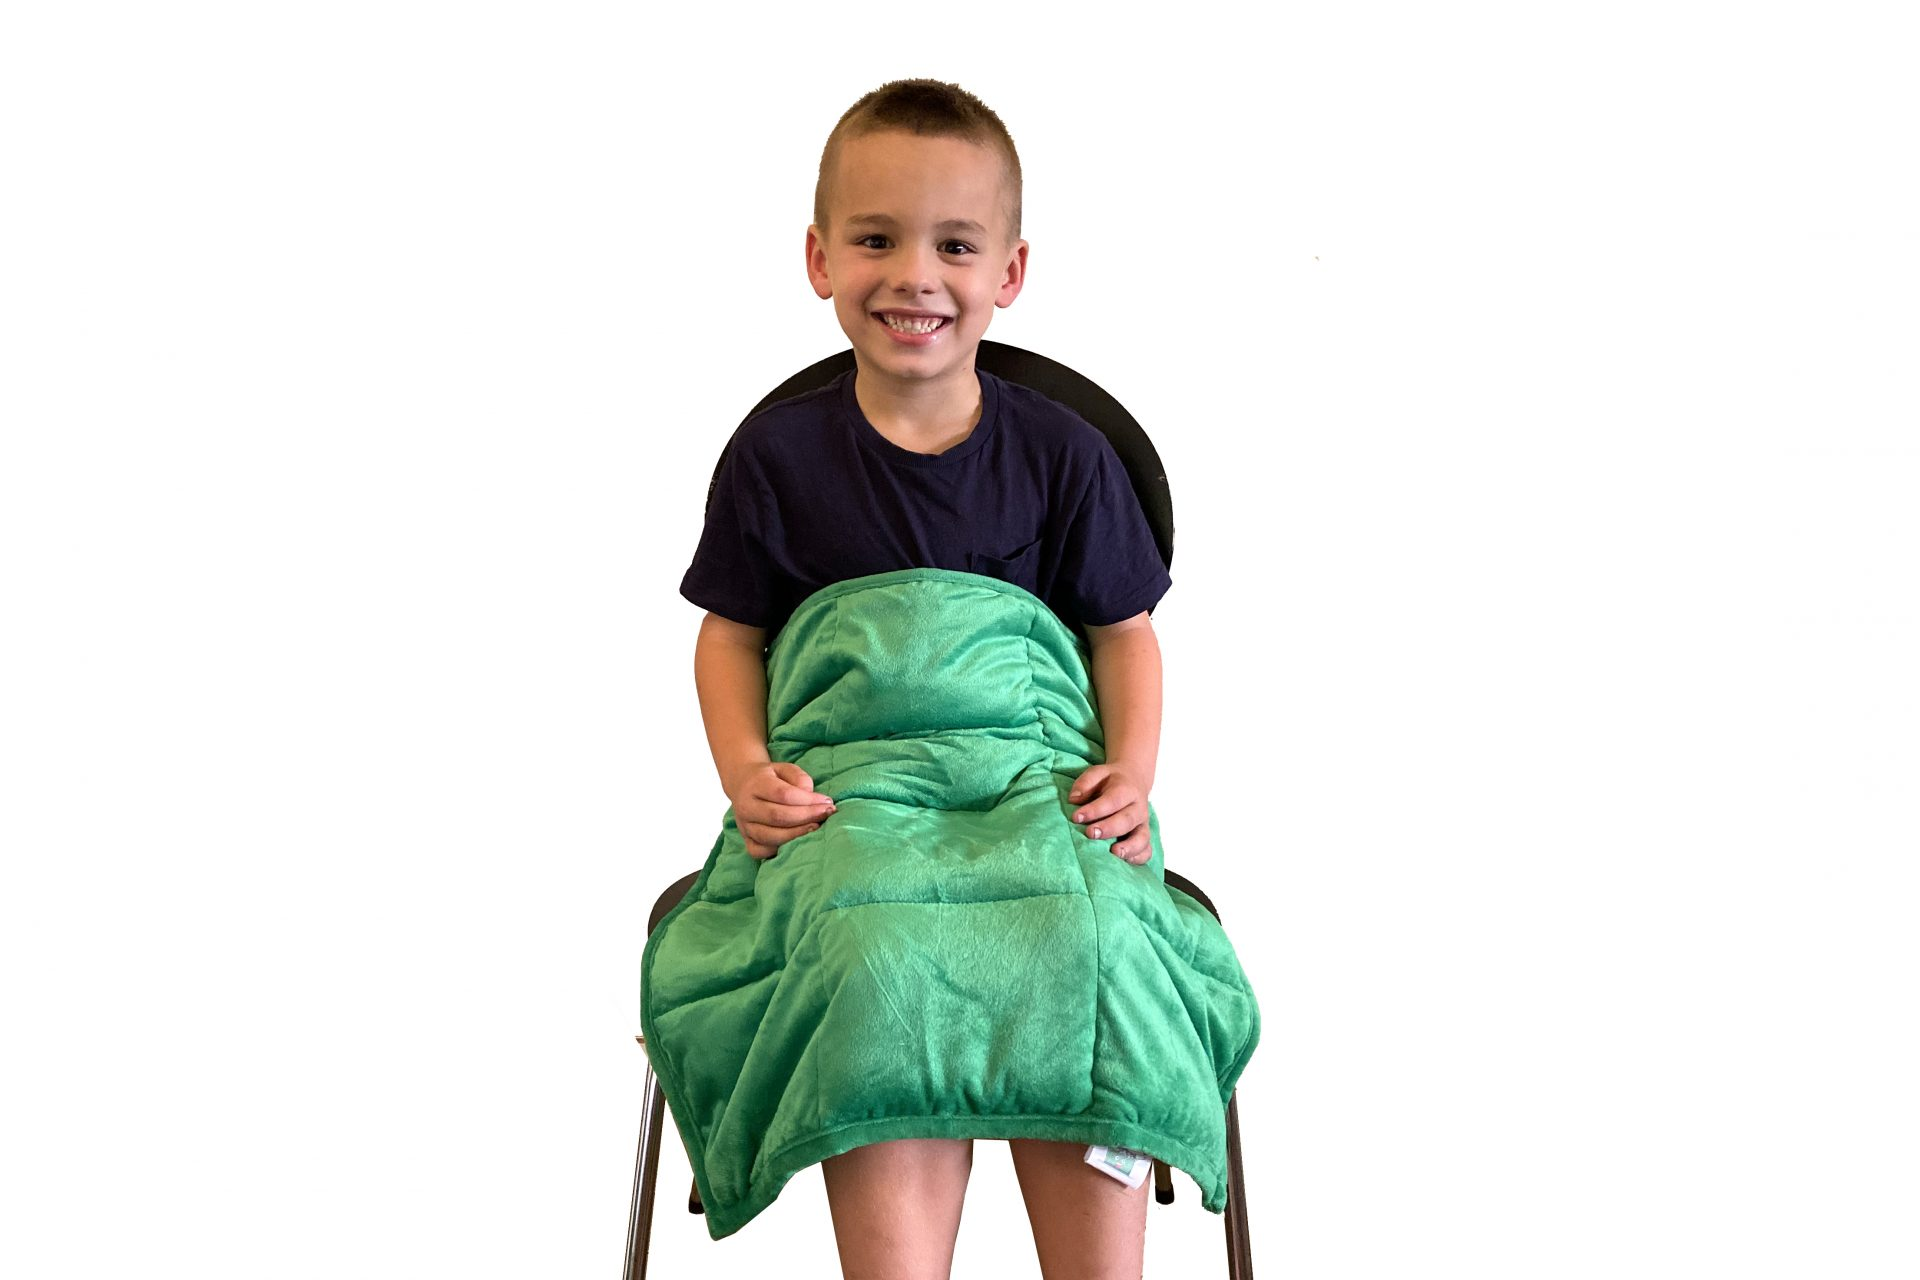 Child with weighted blanked to assist with self-regulation through proprioception and tactile stimulation